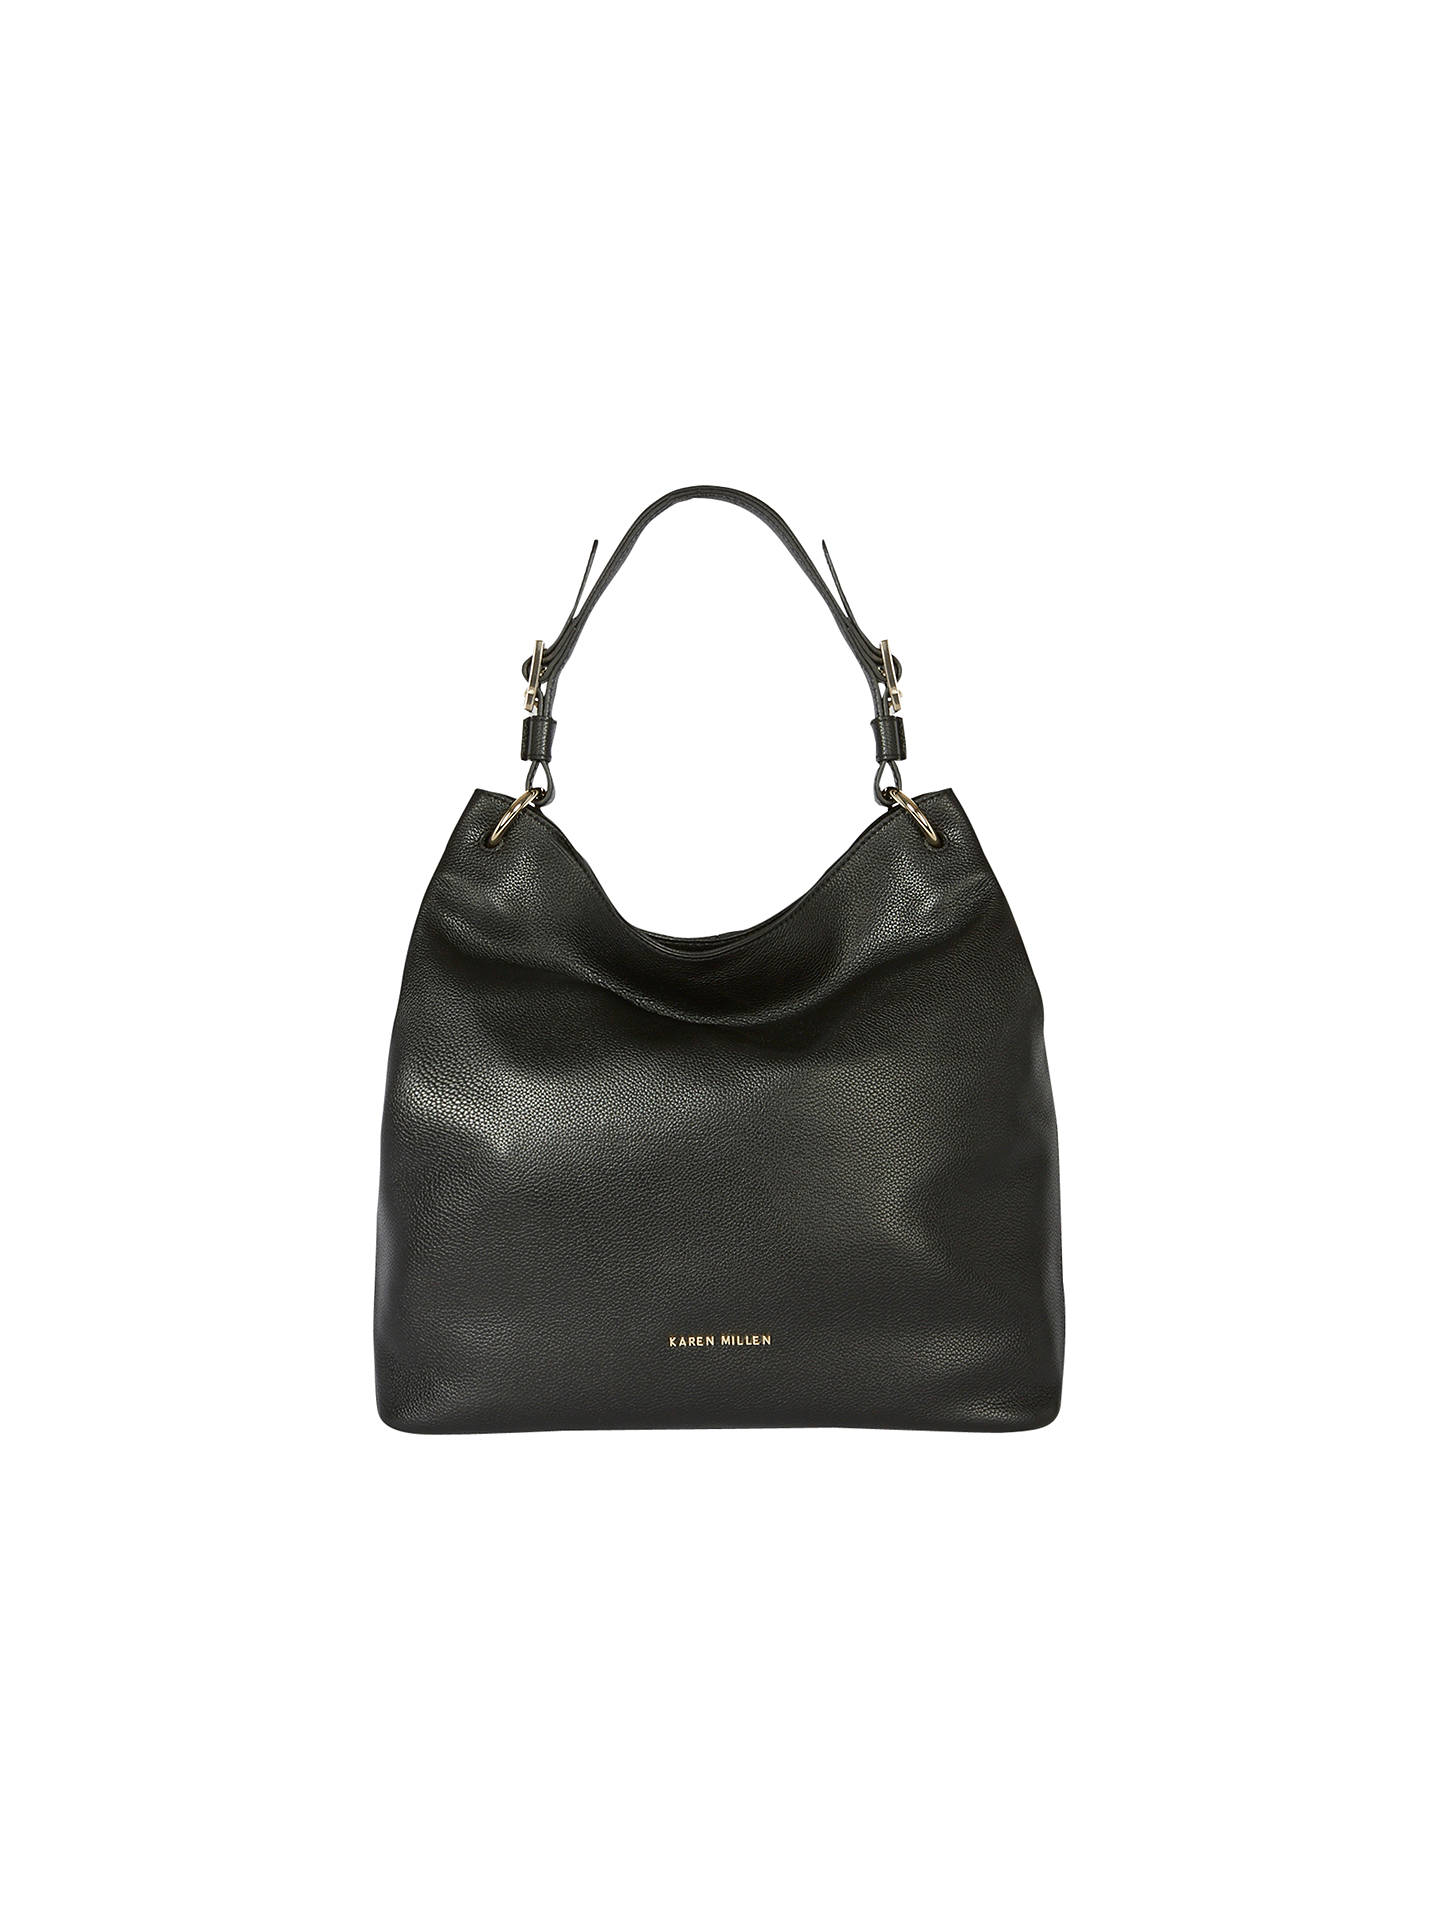 83da66d22c Buy Karen Millen Soft Leather Sling Bag, Black Online at johnlewis.com ...